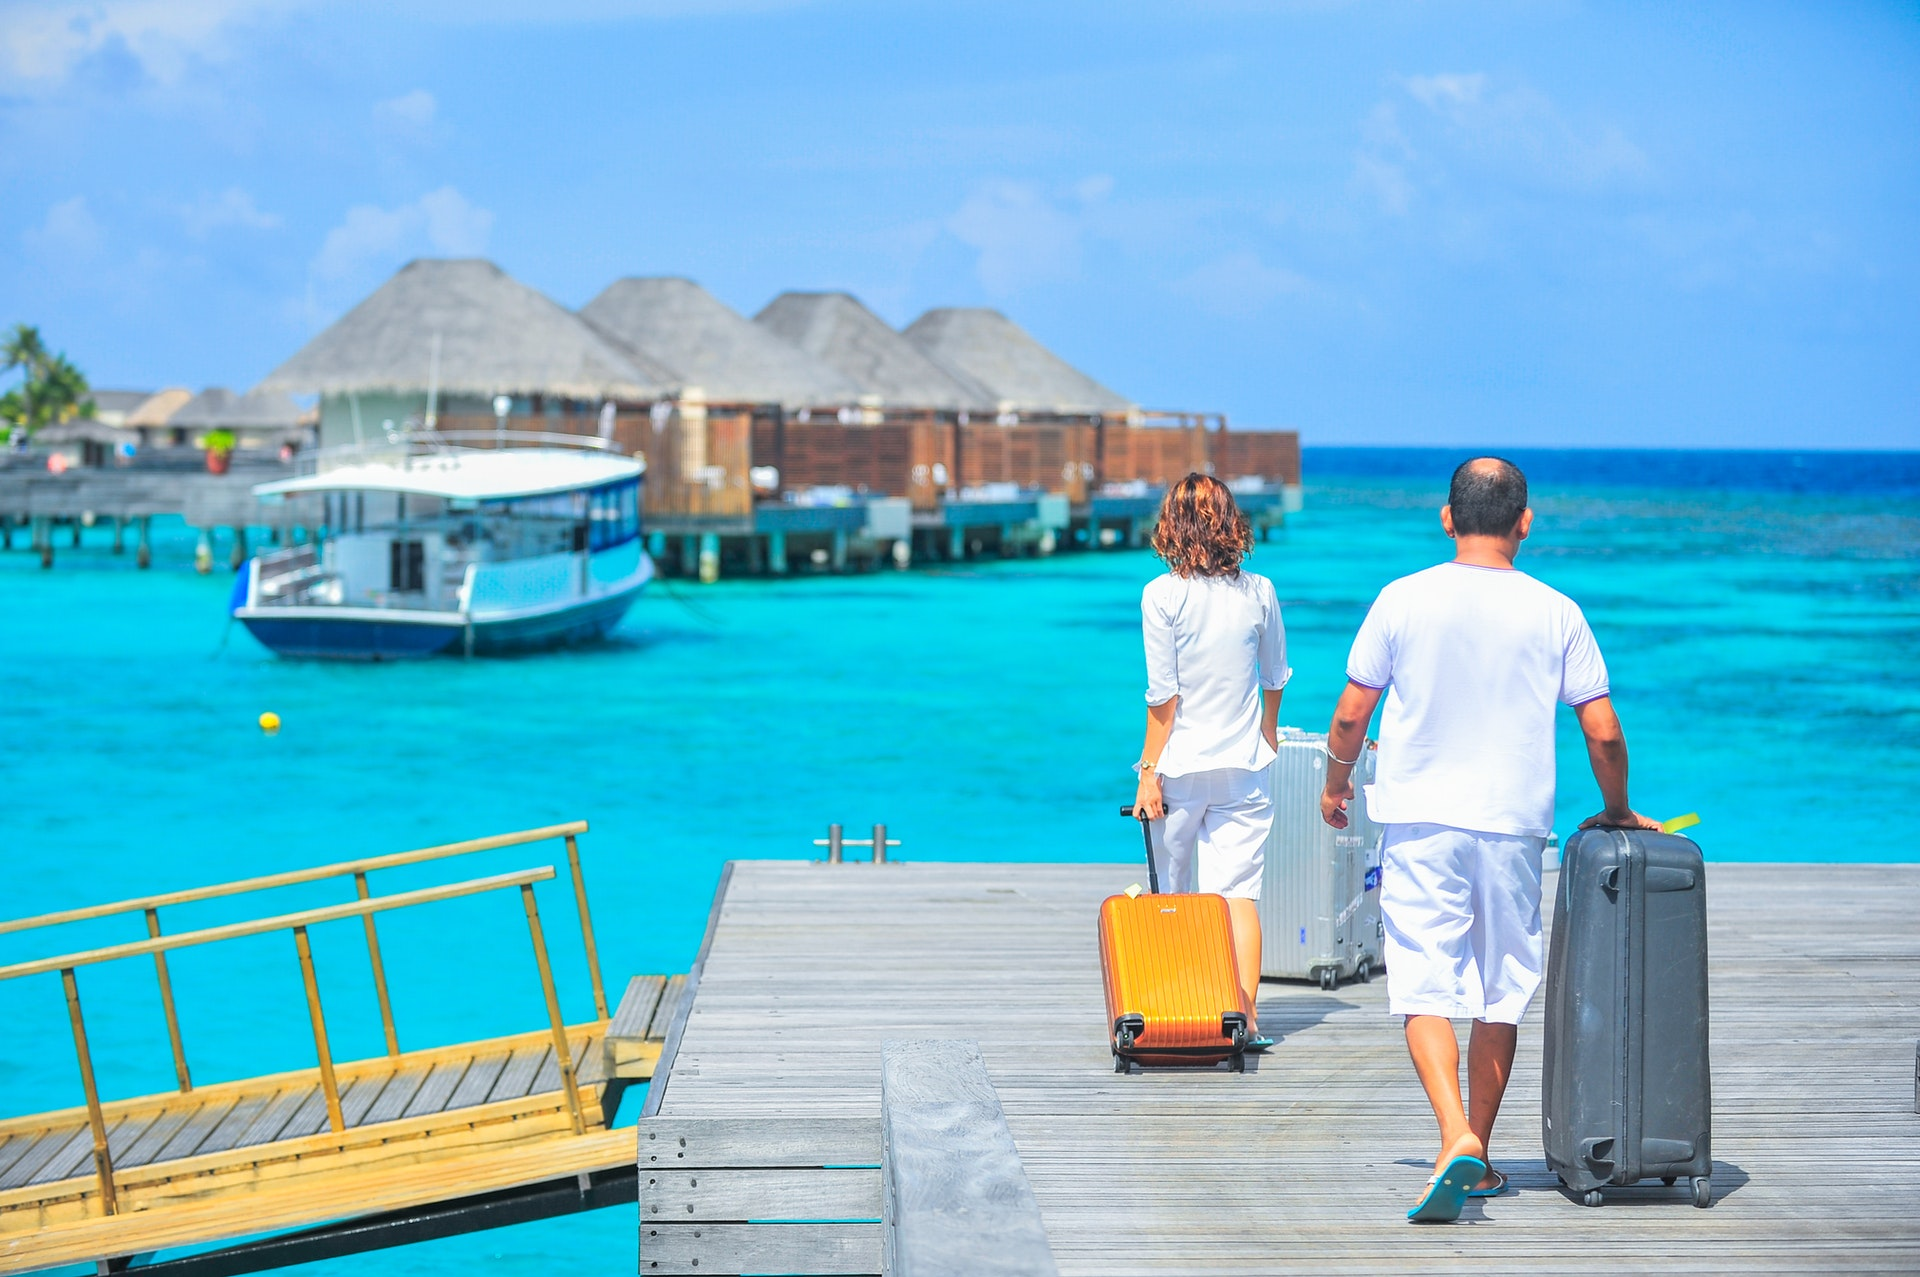 Maldives will reopen for tourists on July 15th, 2020